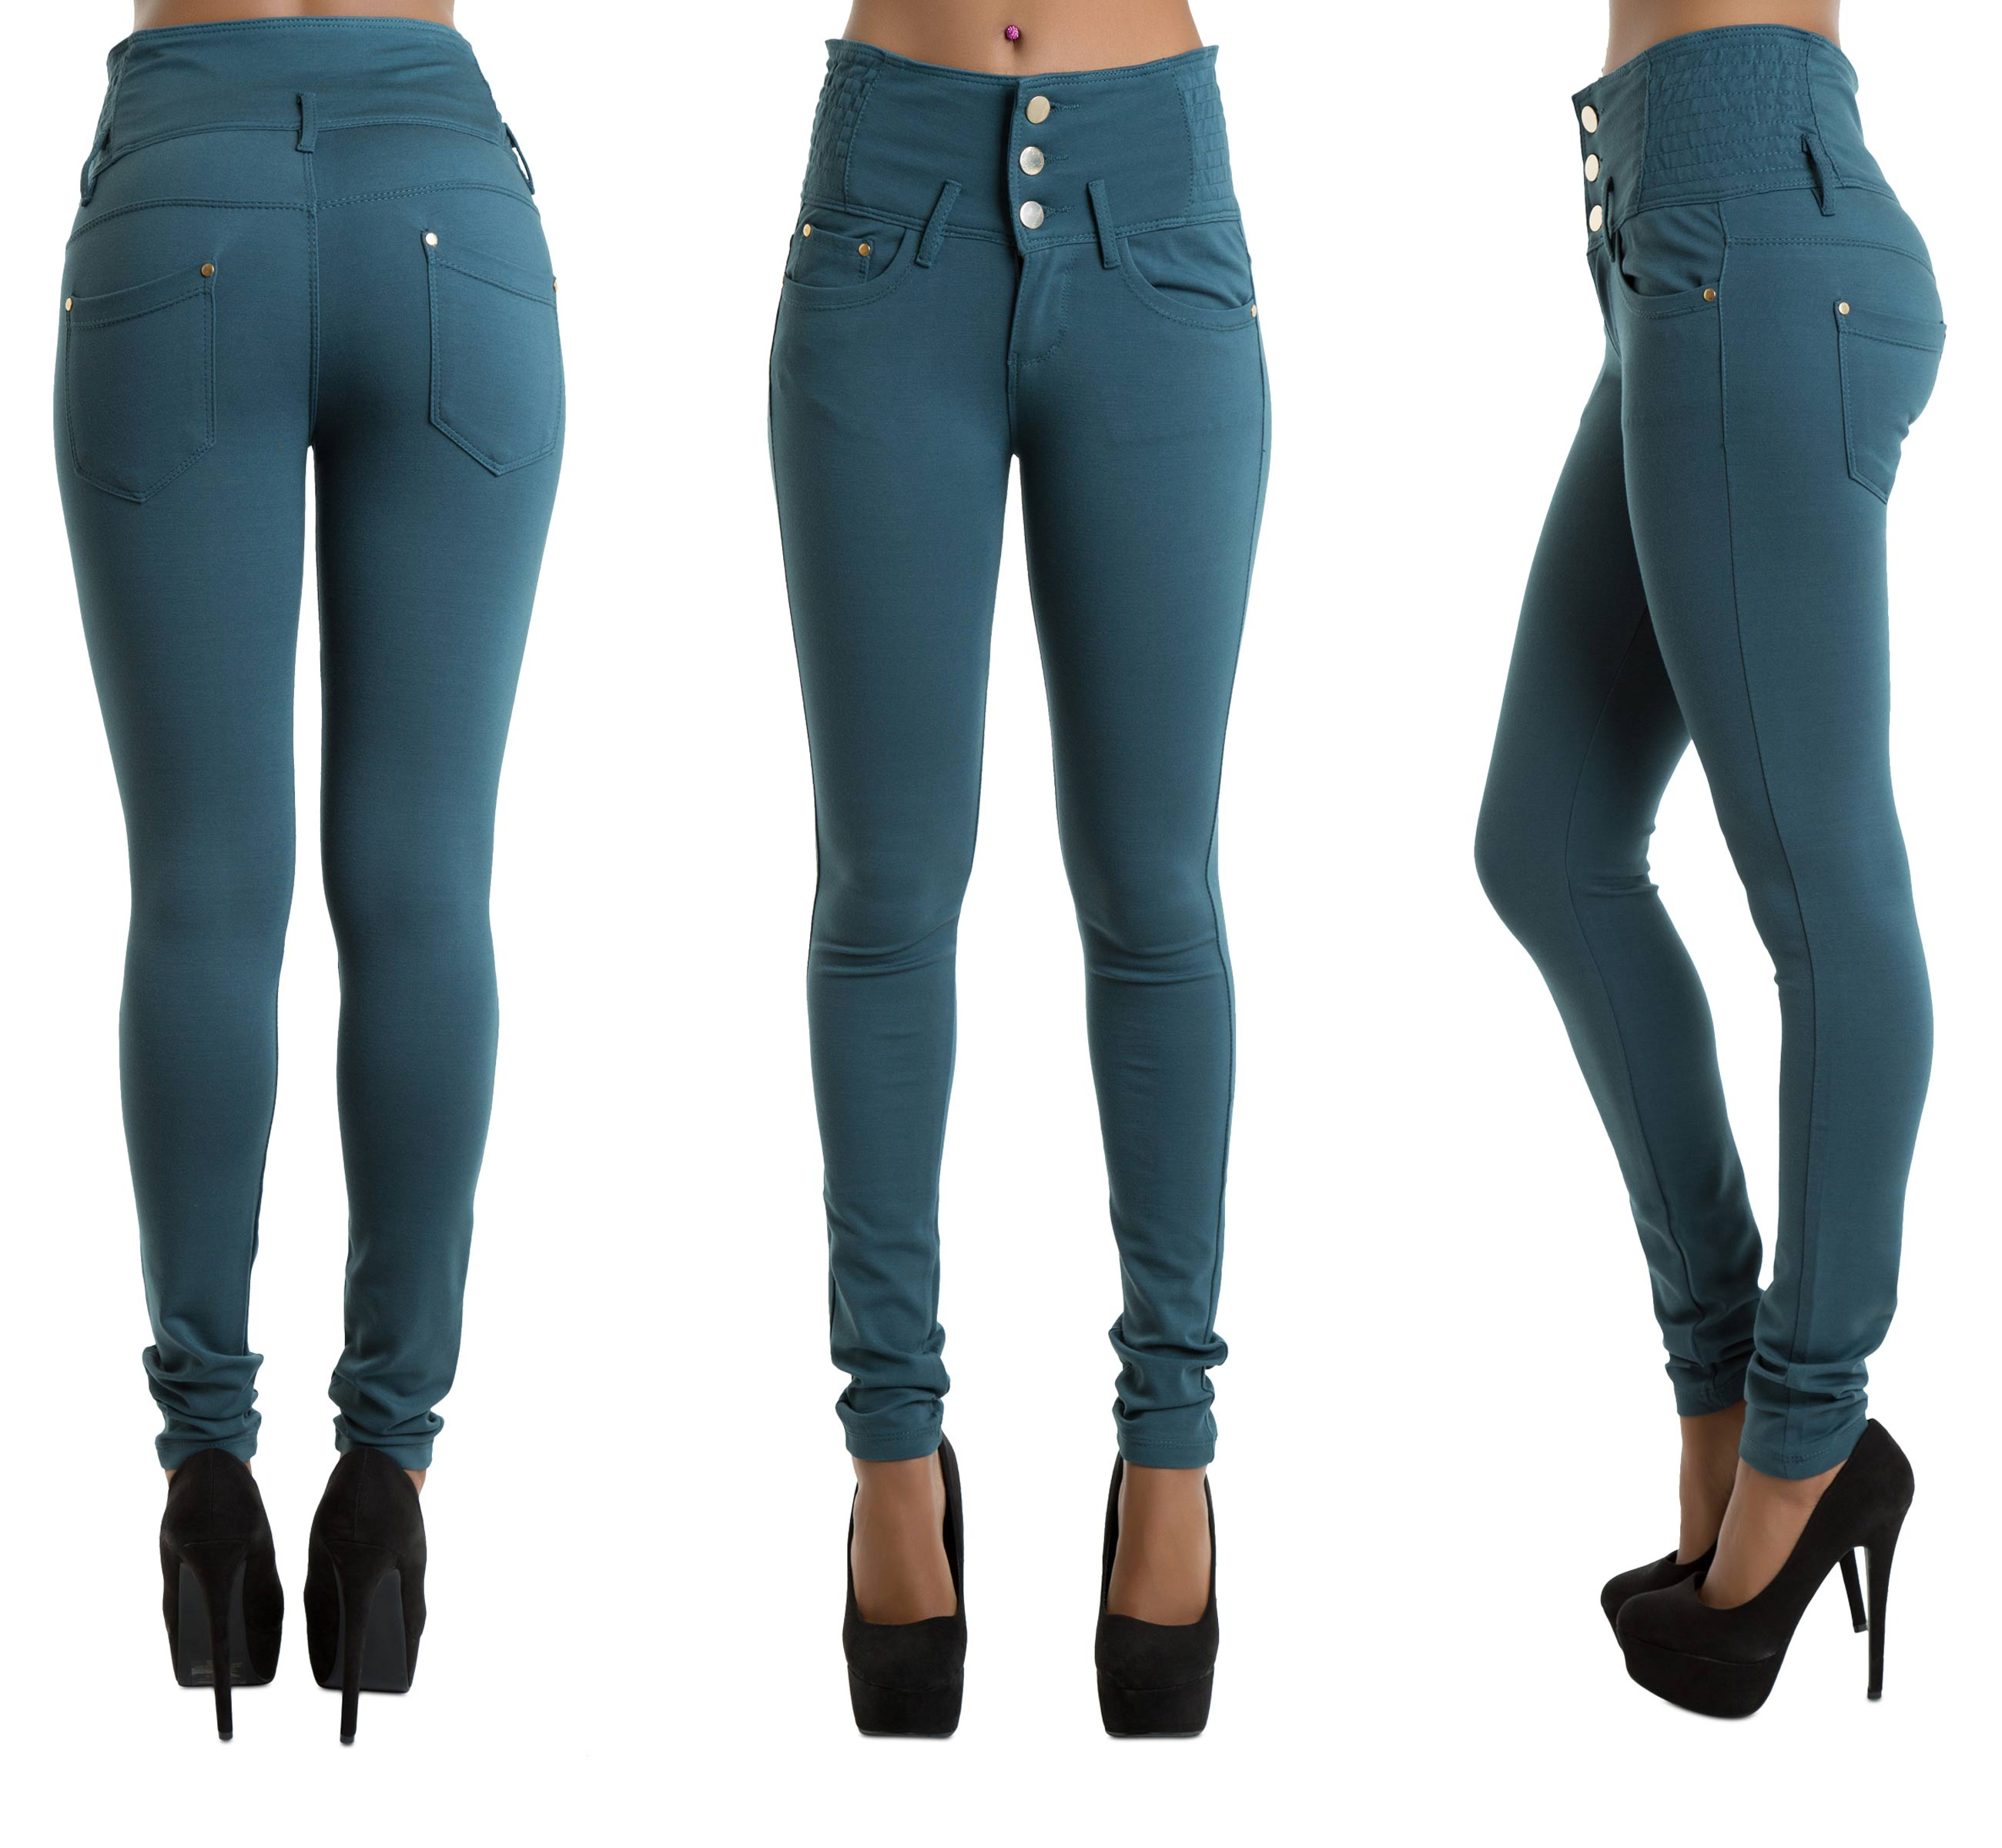 High Waisted Cropped Jeans. Slip into comfy vintage-chic with a pair of high-waist jeans. Jeans are a timeless fashion statement that can be dressed up or down with different tops, shoes and accessories. Jeans in neutral tones such as denim blue, gray and black look equally stylish when worn with any other color and complement all skin tones well.